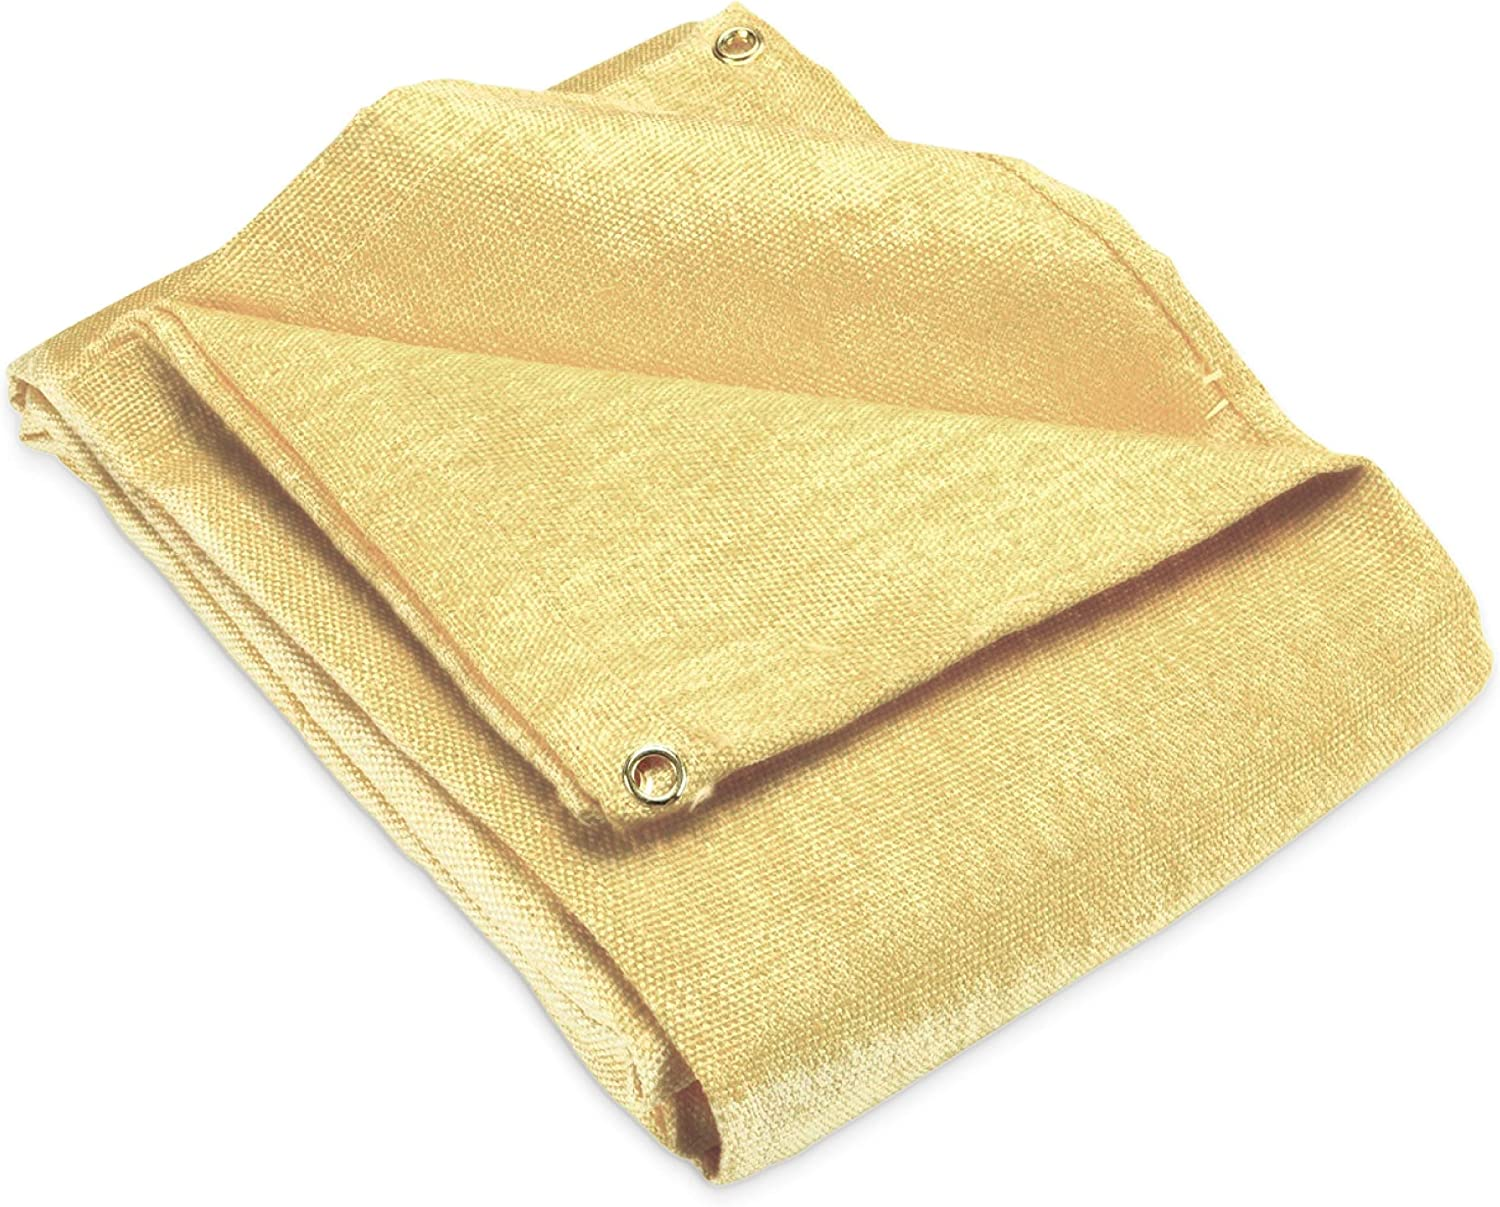 Welding Blanket 4x6 Fiberglass Fireproof Brass grommets for easy Hanging and Protection 2 pack Cover Thermal resistant insulation Retardant